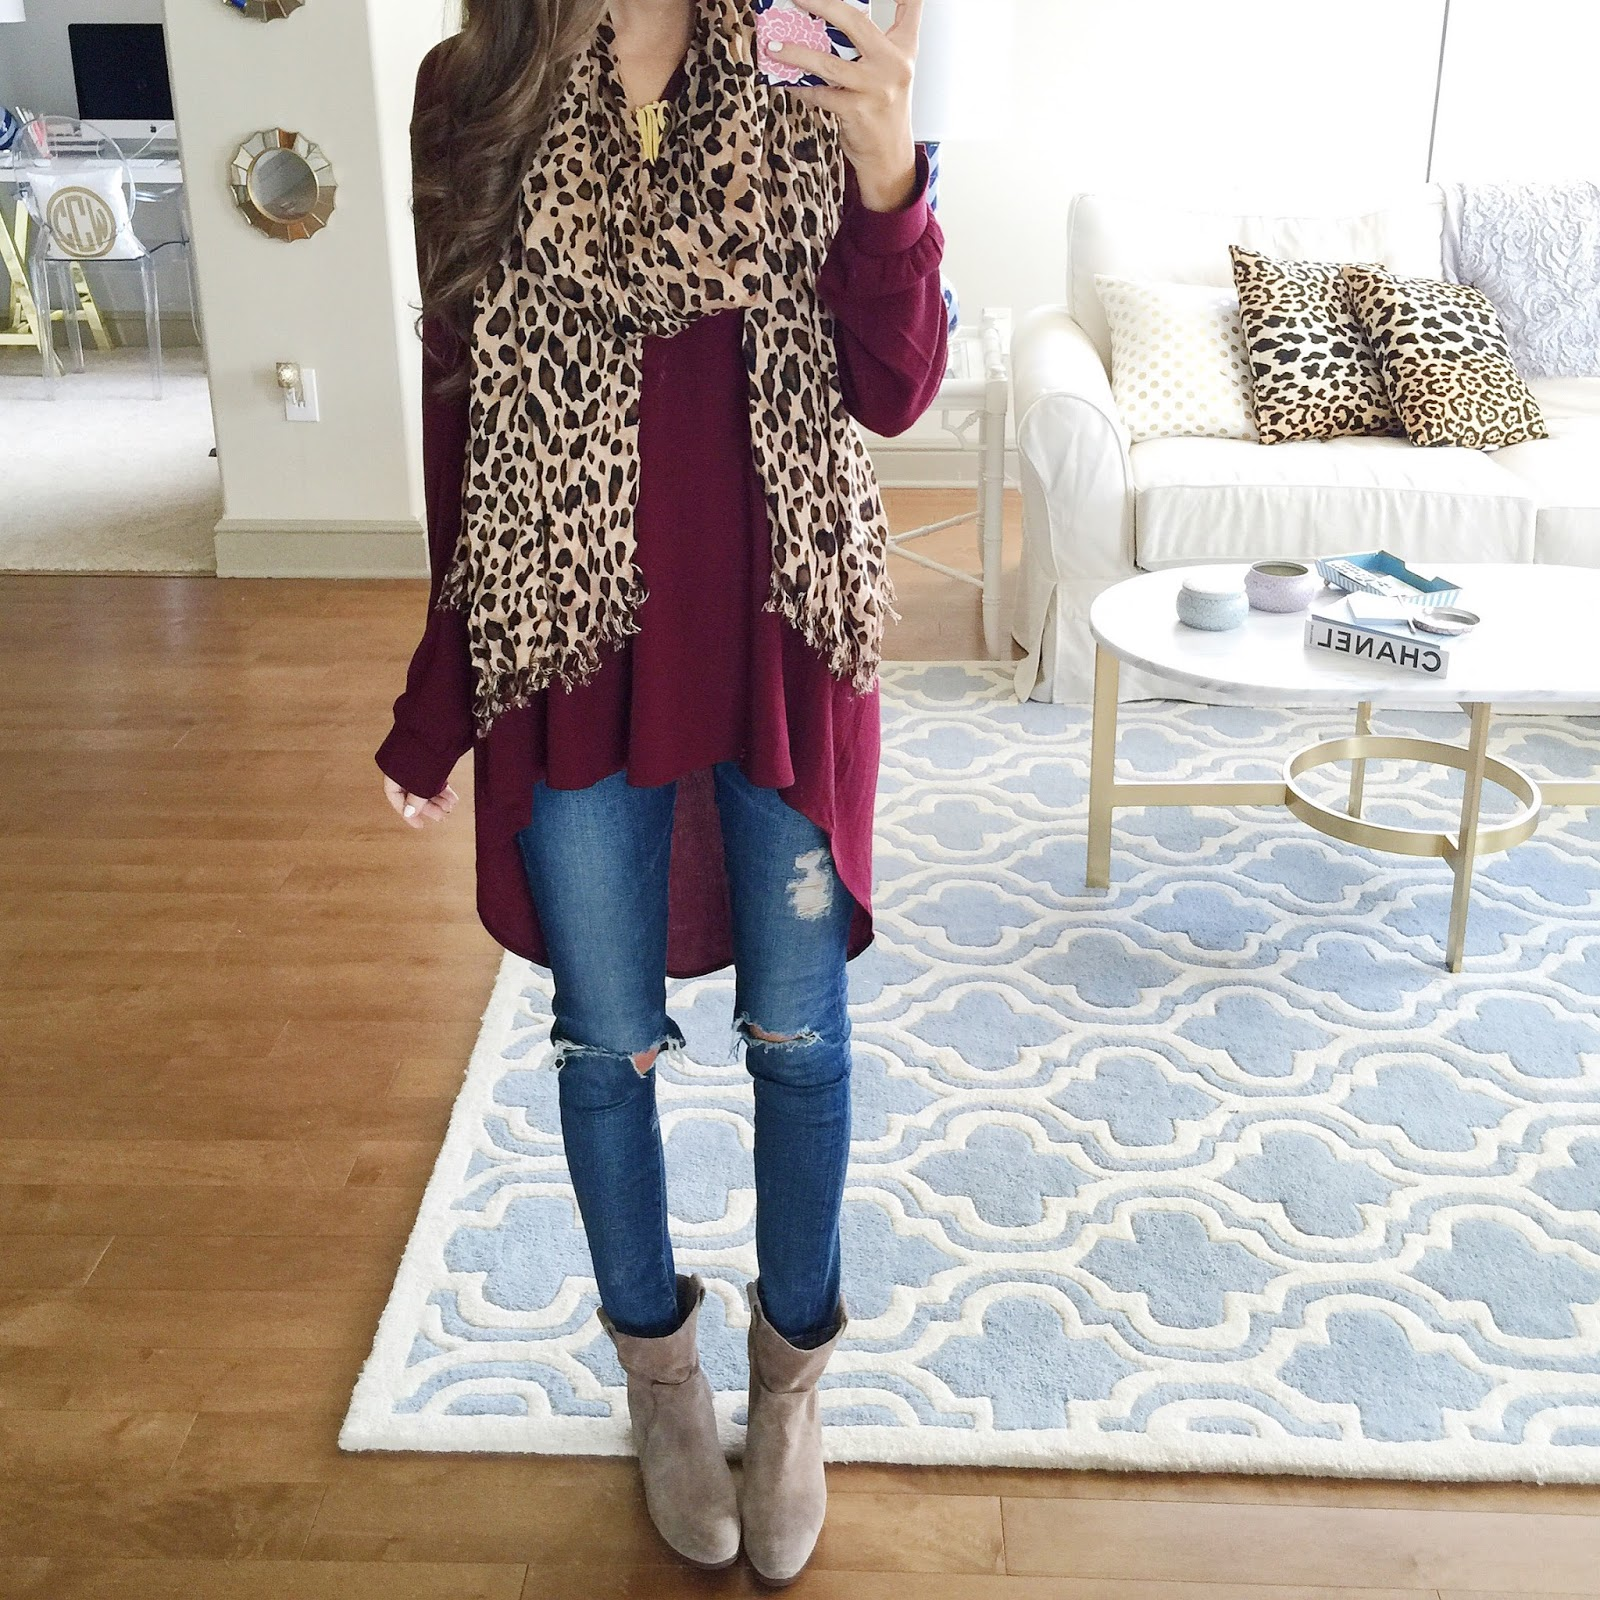 f8f0af30856 iPhone Snaps (Recent Outfits + LA Trip!) – Southern Curls   Pearls